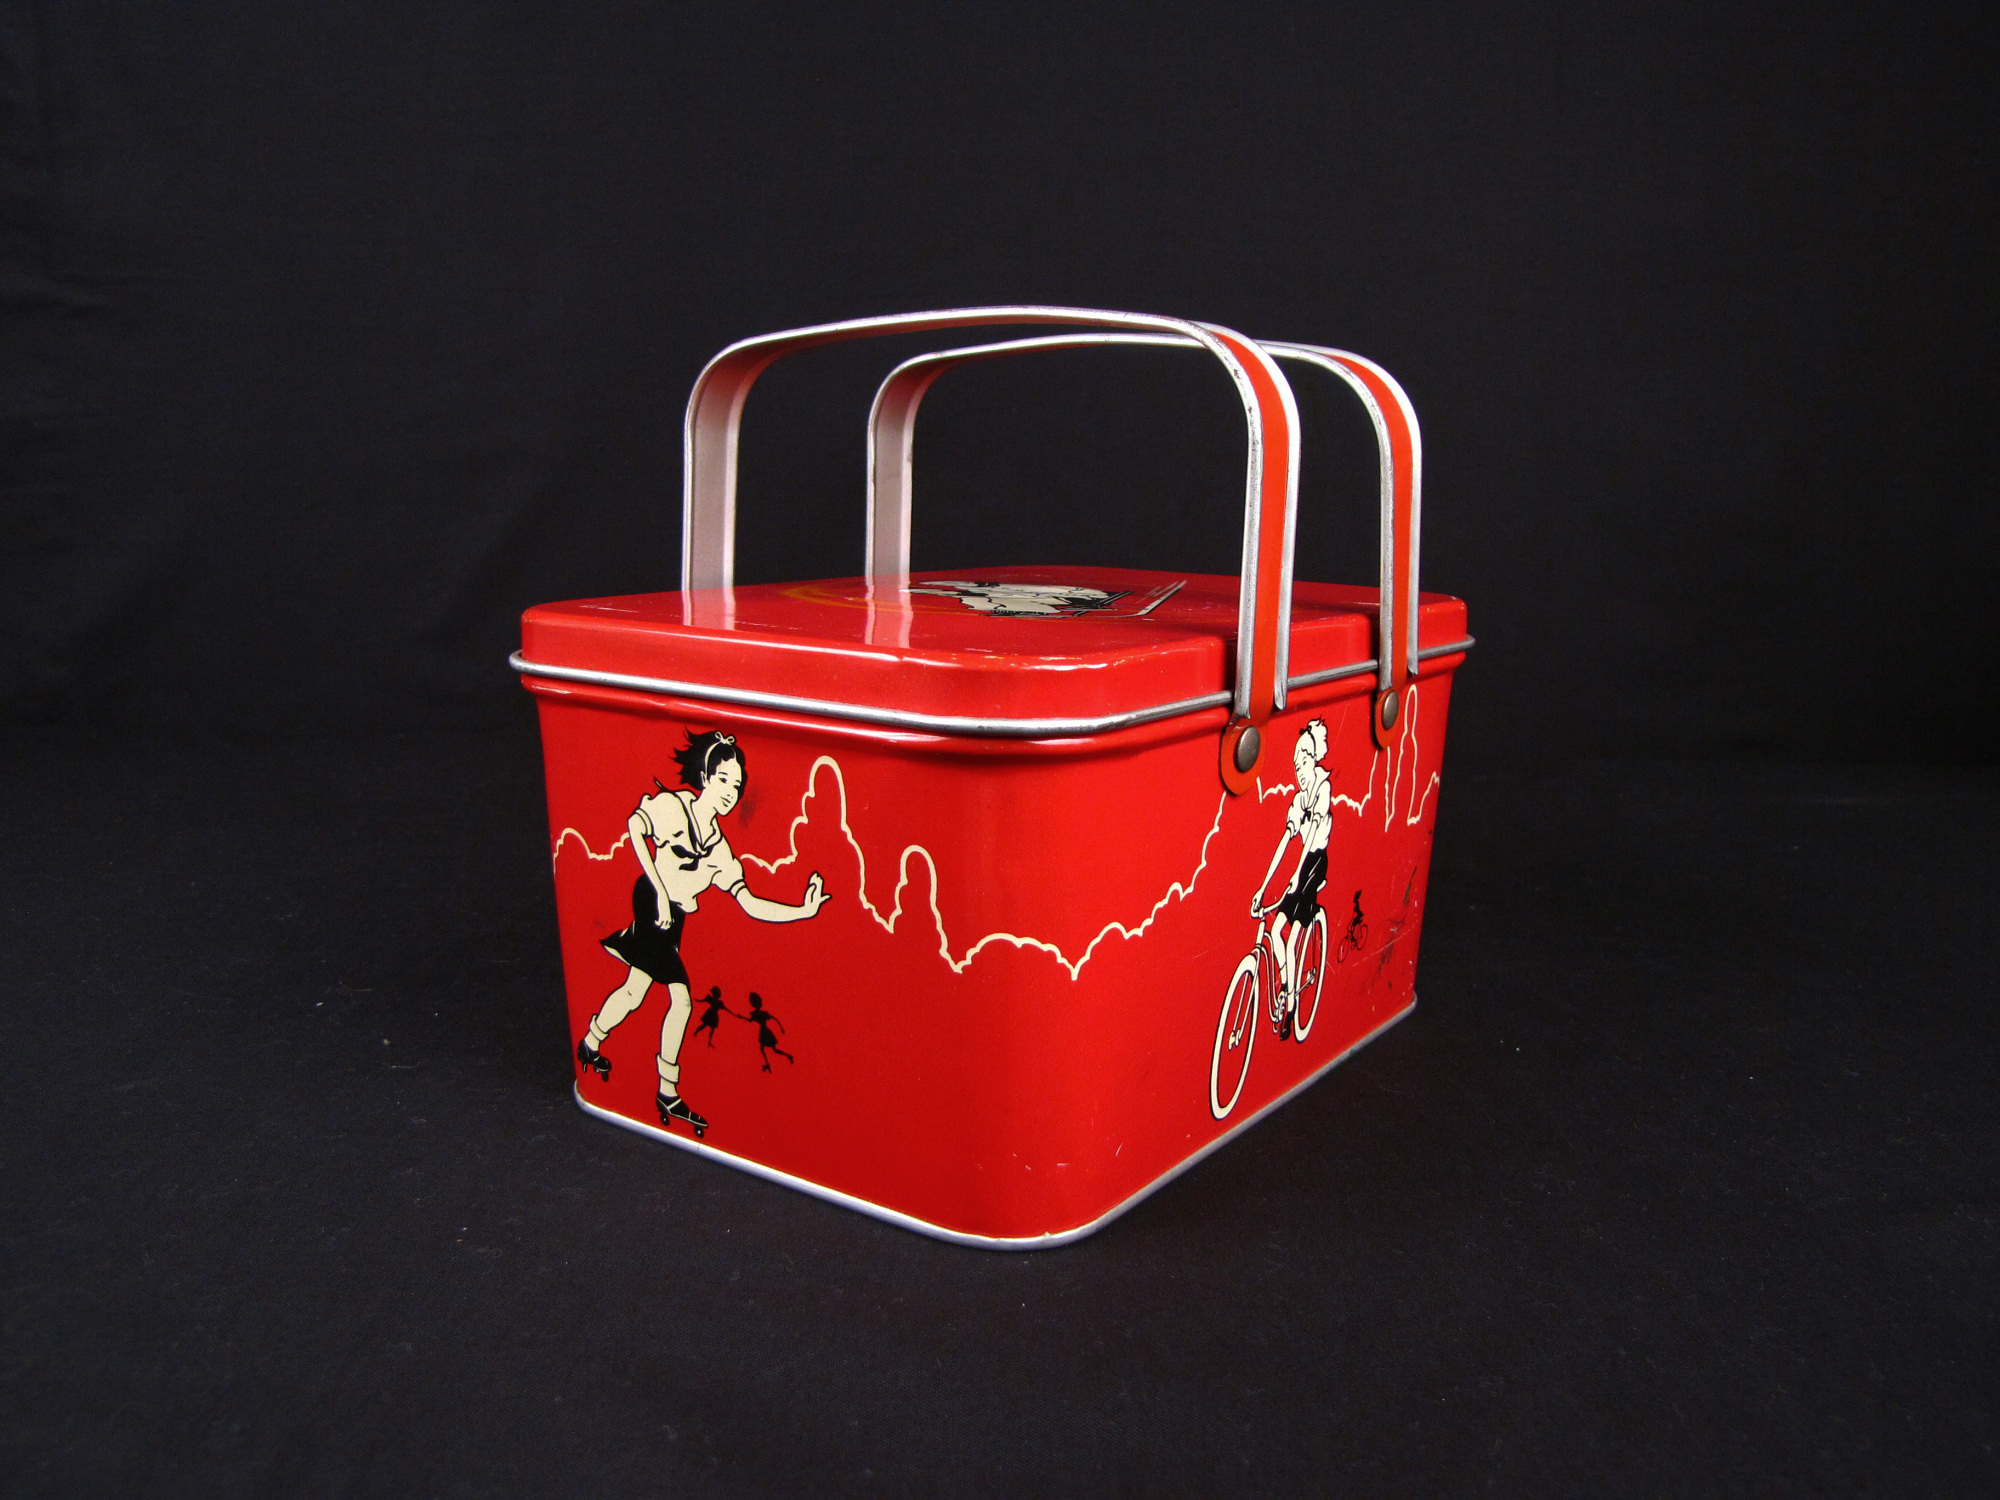 DecoWare Lunch Box, 1930s